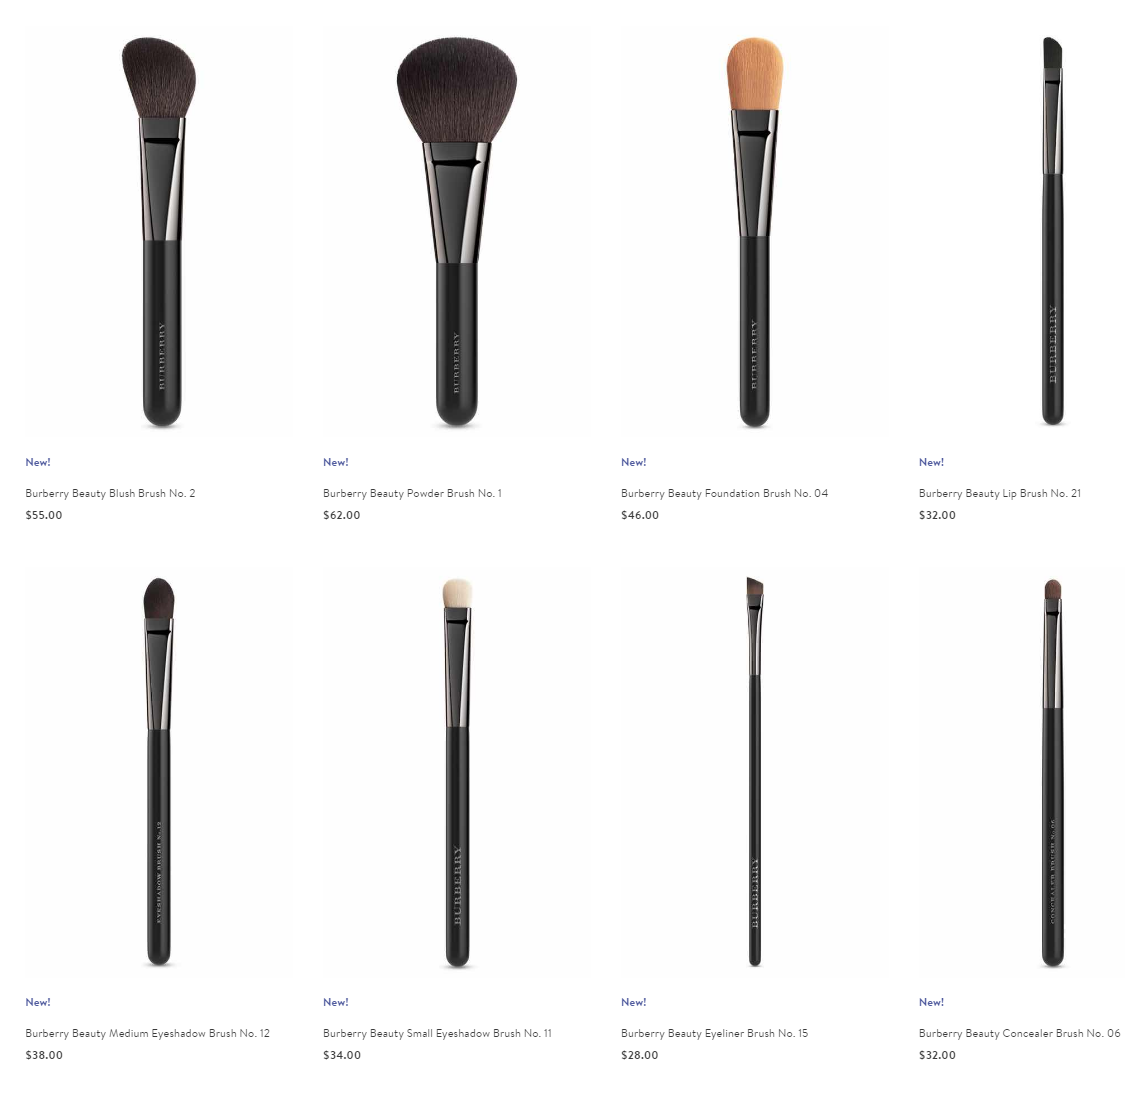 a9748594c25 Re  Burberry Beauty Updates - Page 8 - Beauty Insider Community